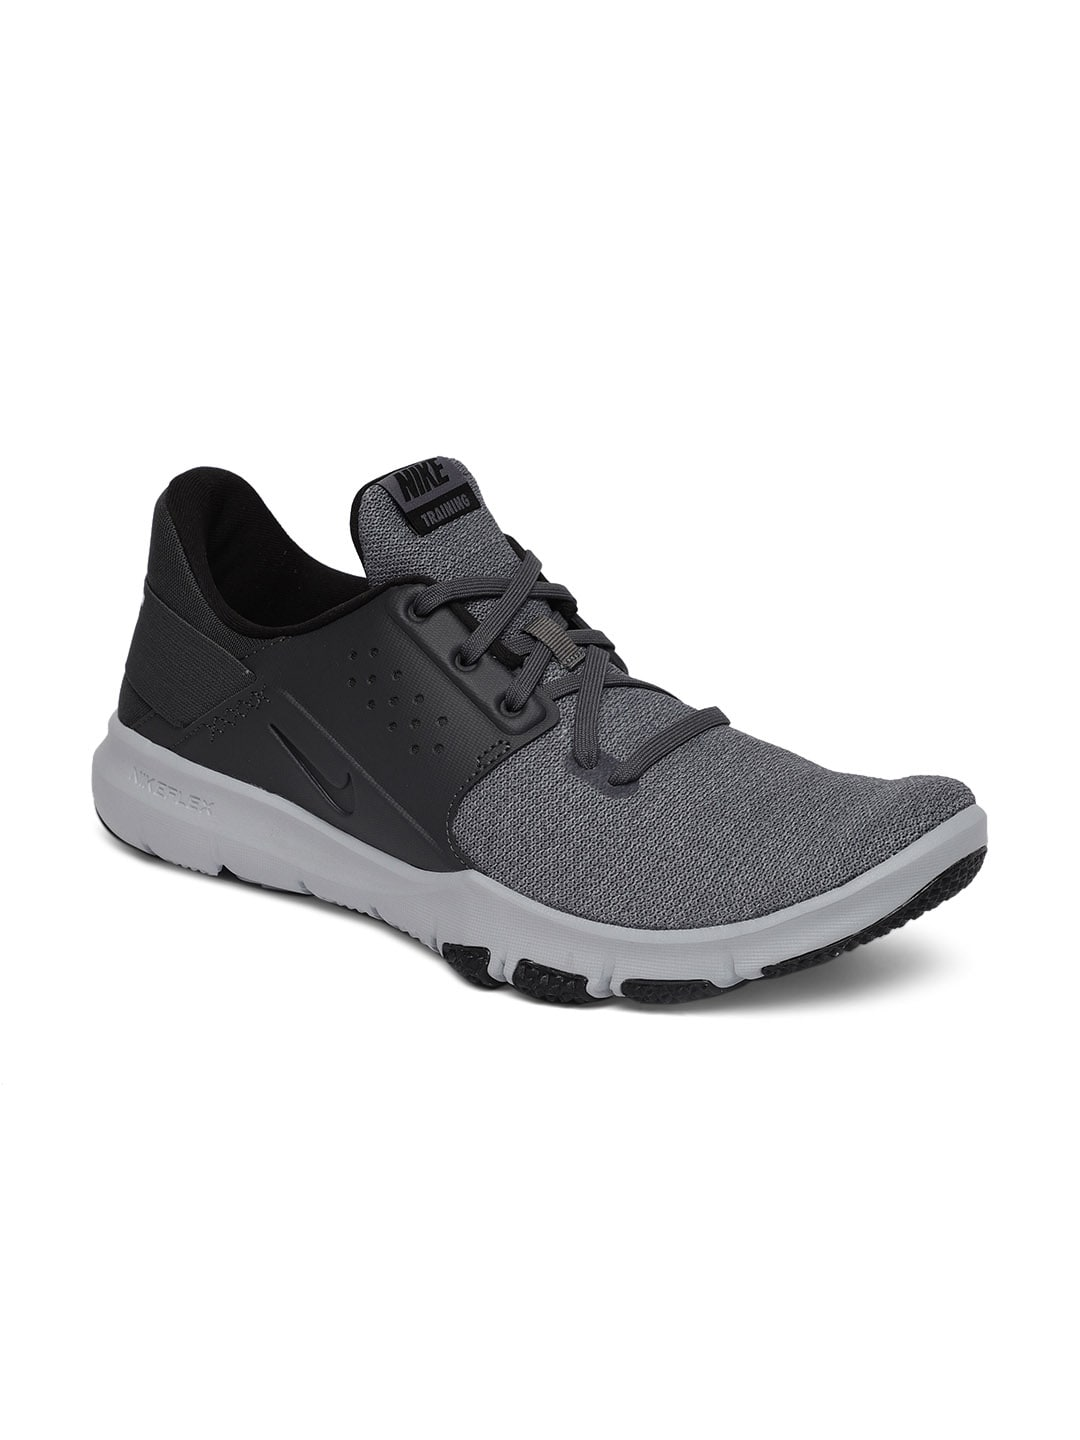 timeless design 43a7b 23f43 Nike Shoes - Buy Nike Shoes for Men, Women   Kids Online   Myntra